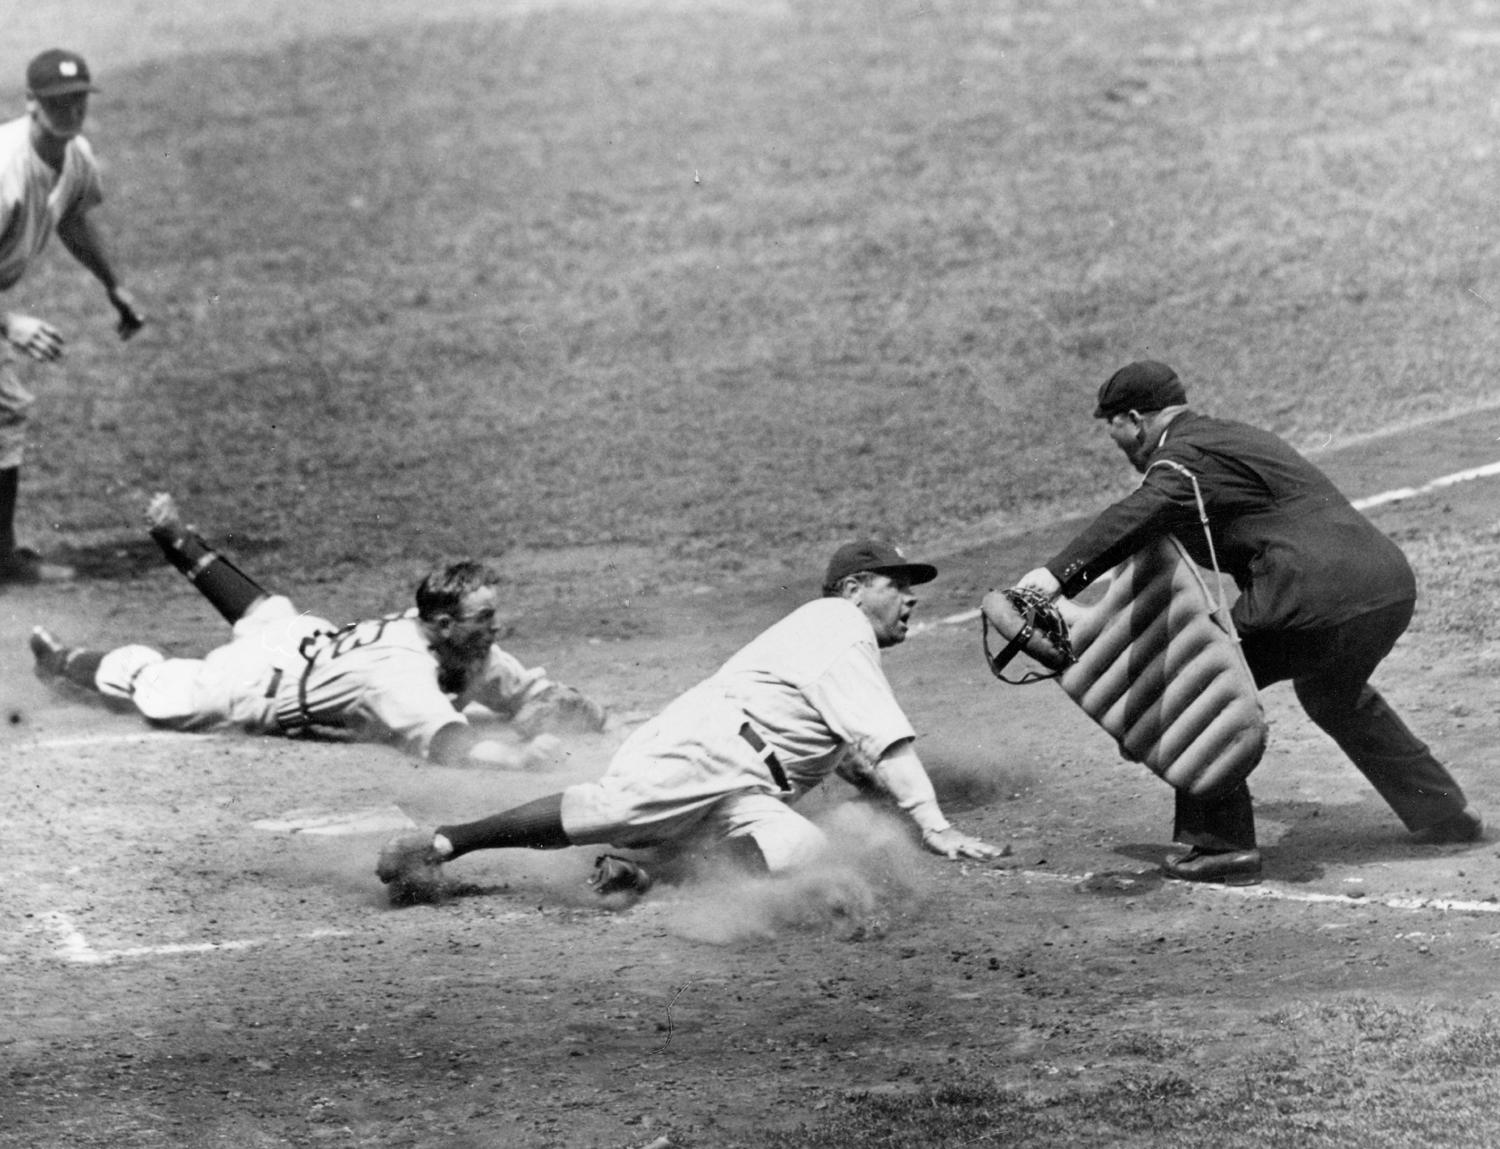 Ruth led the league in slugging percentage 13 times and in home runs 12 times during his career. (National Baseball Hall of Fame and Museum)